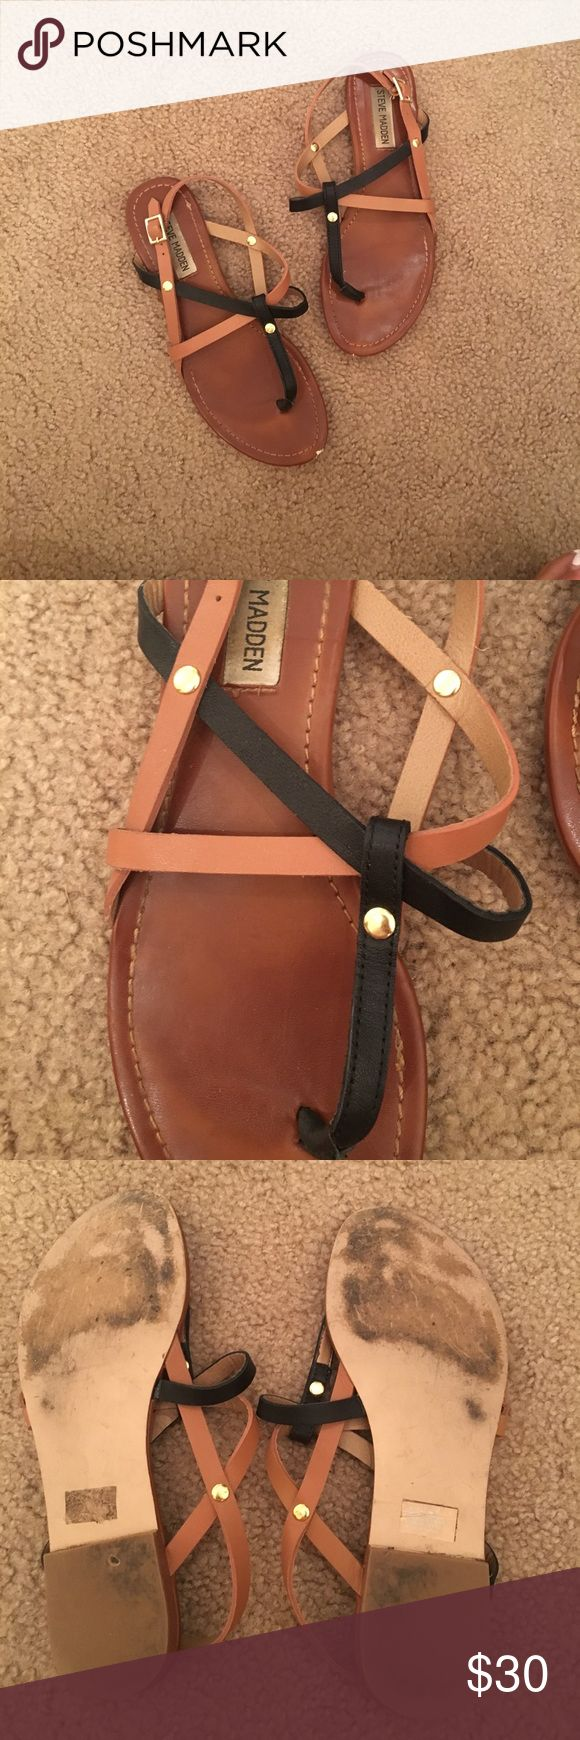 Steve Madden Leather Strappy Sandals Tan and black mixed straps. Slightly worn! Slight scuffs on toe edge, you can see it in pictures. Other than that, looks new! Super cute criss cross. Steve Madden Shoes Sandals